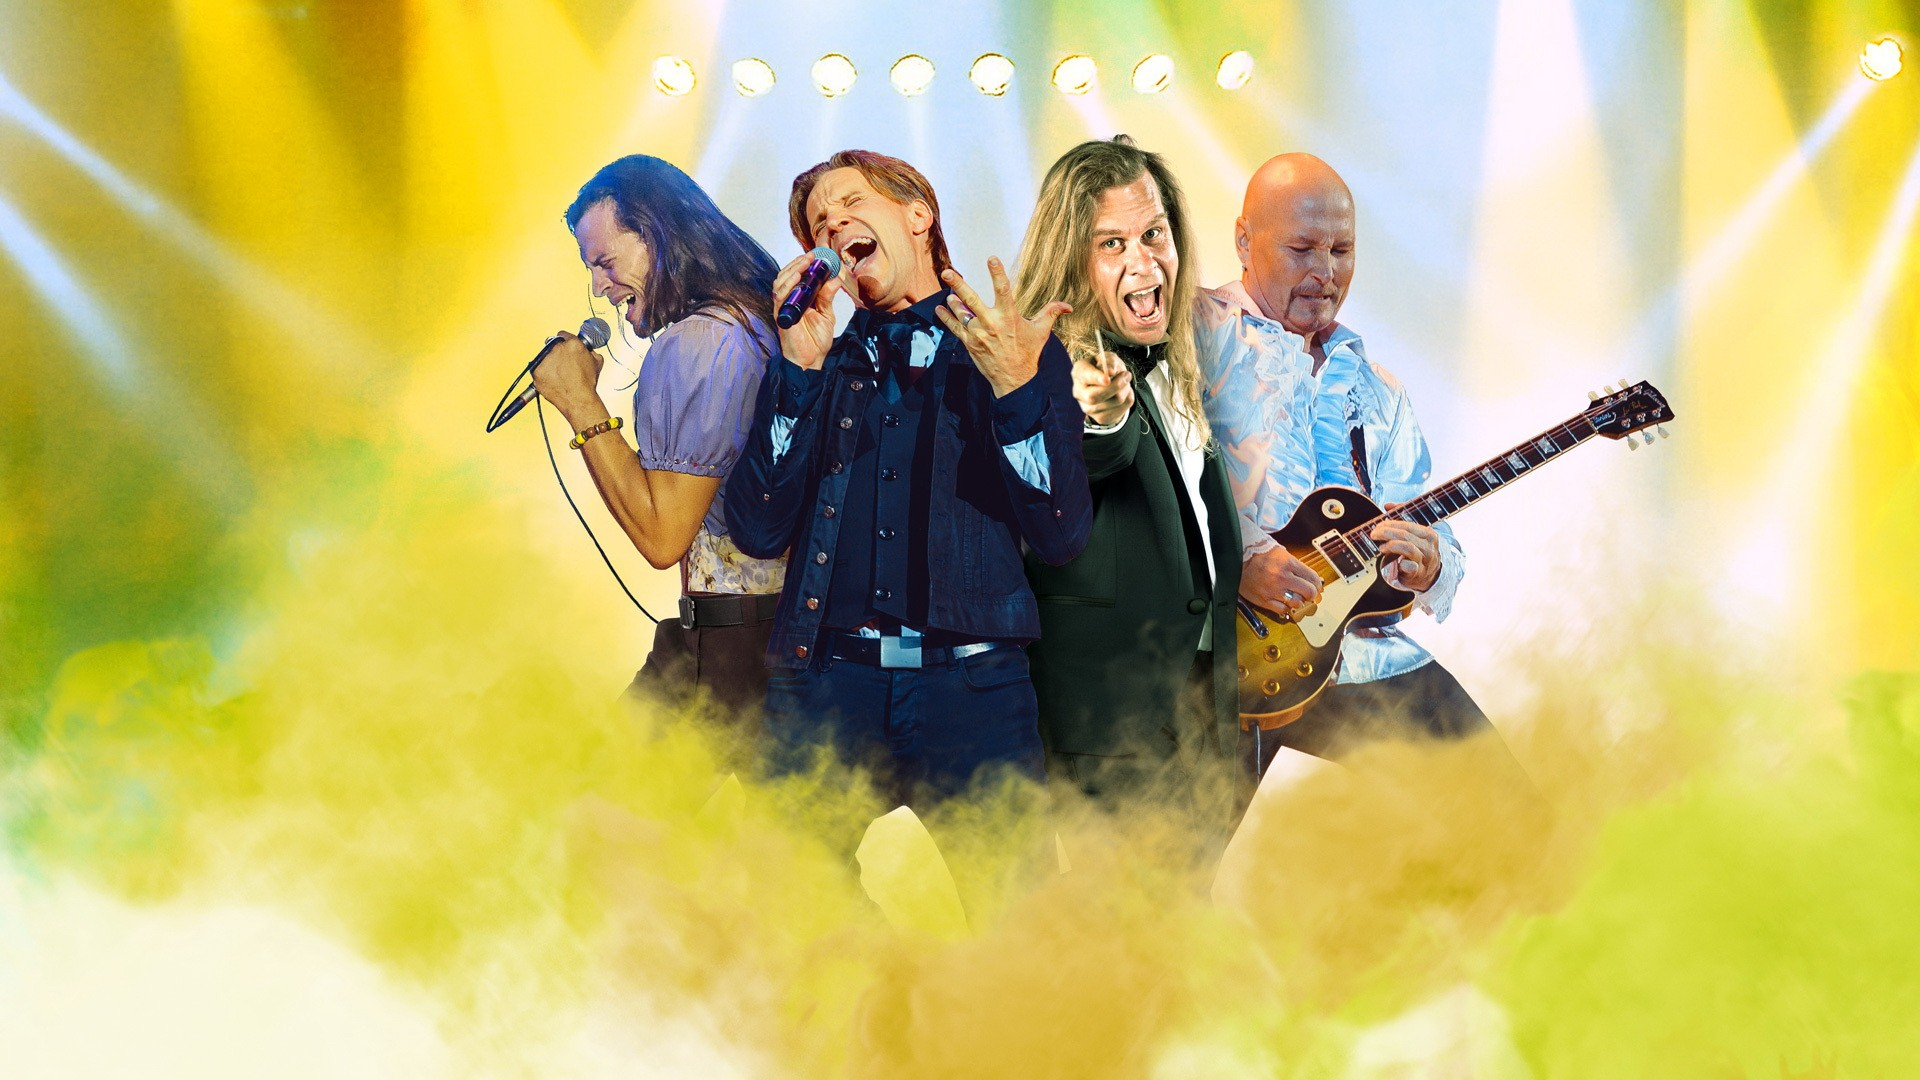 Gold hits of Rock. The Russian Philharmonic